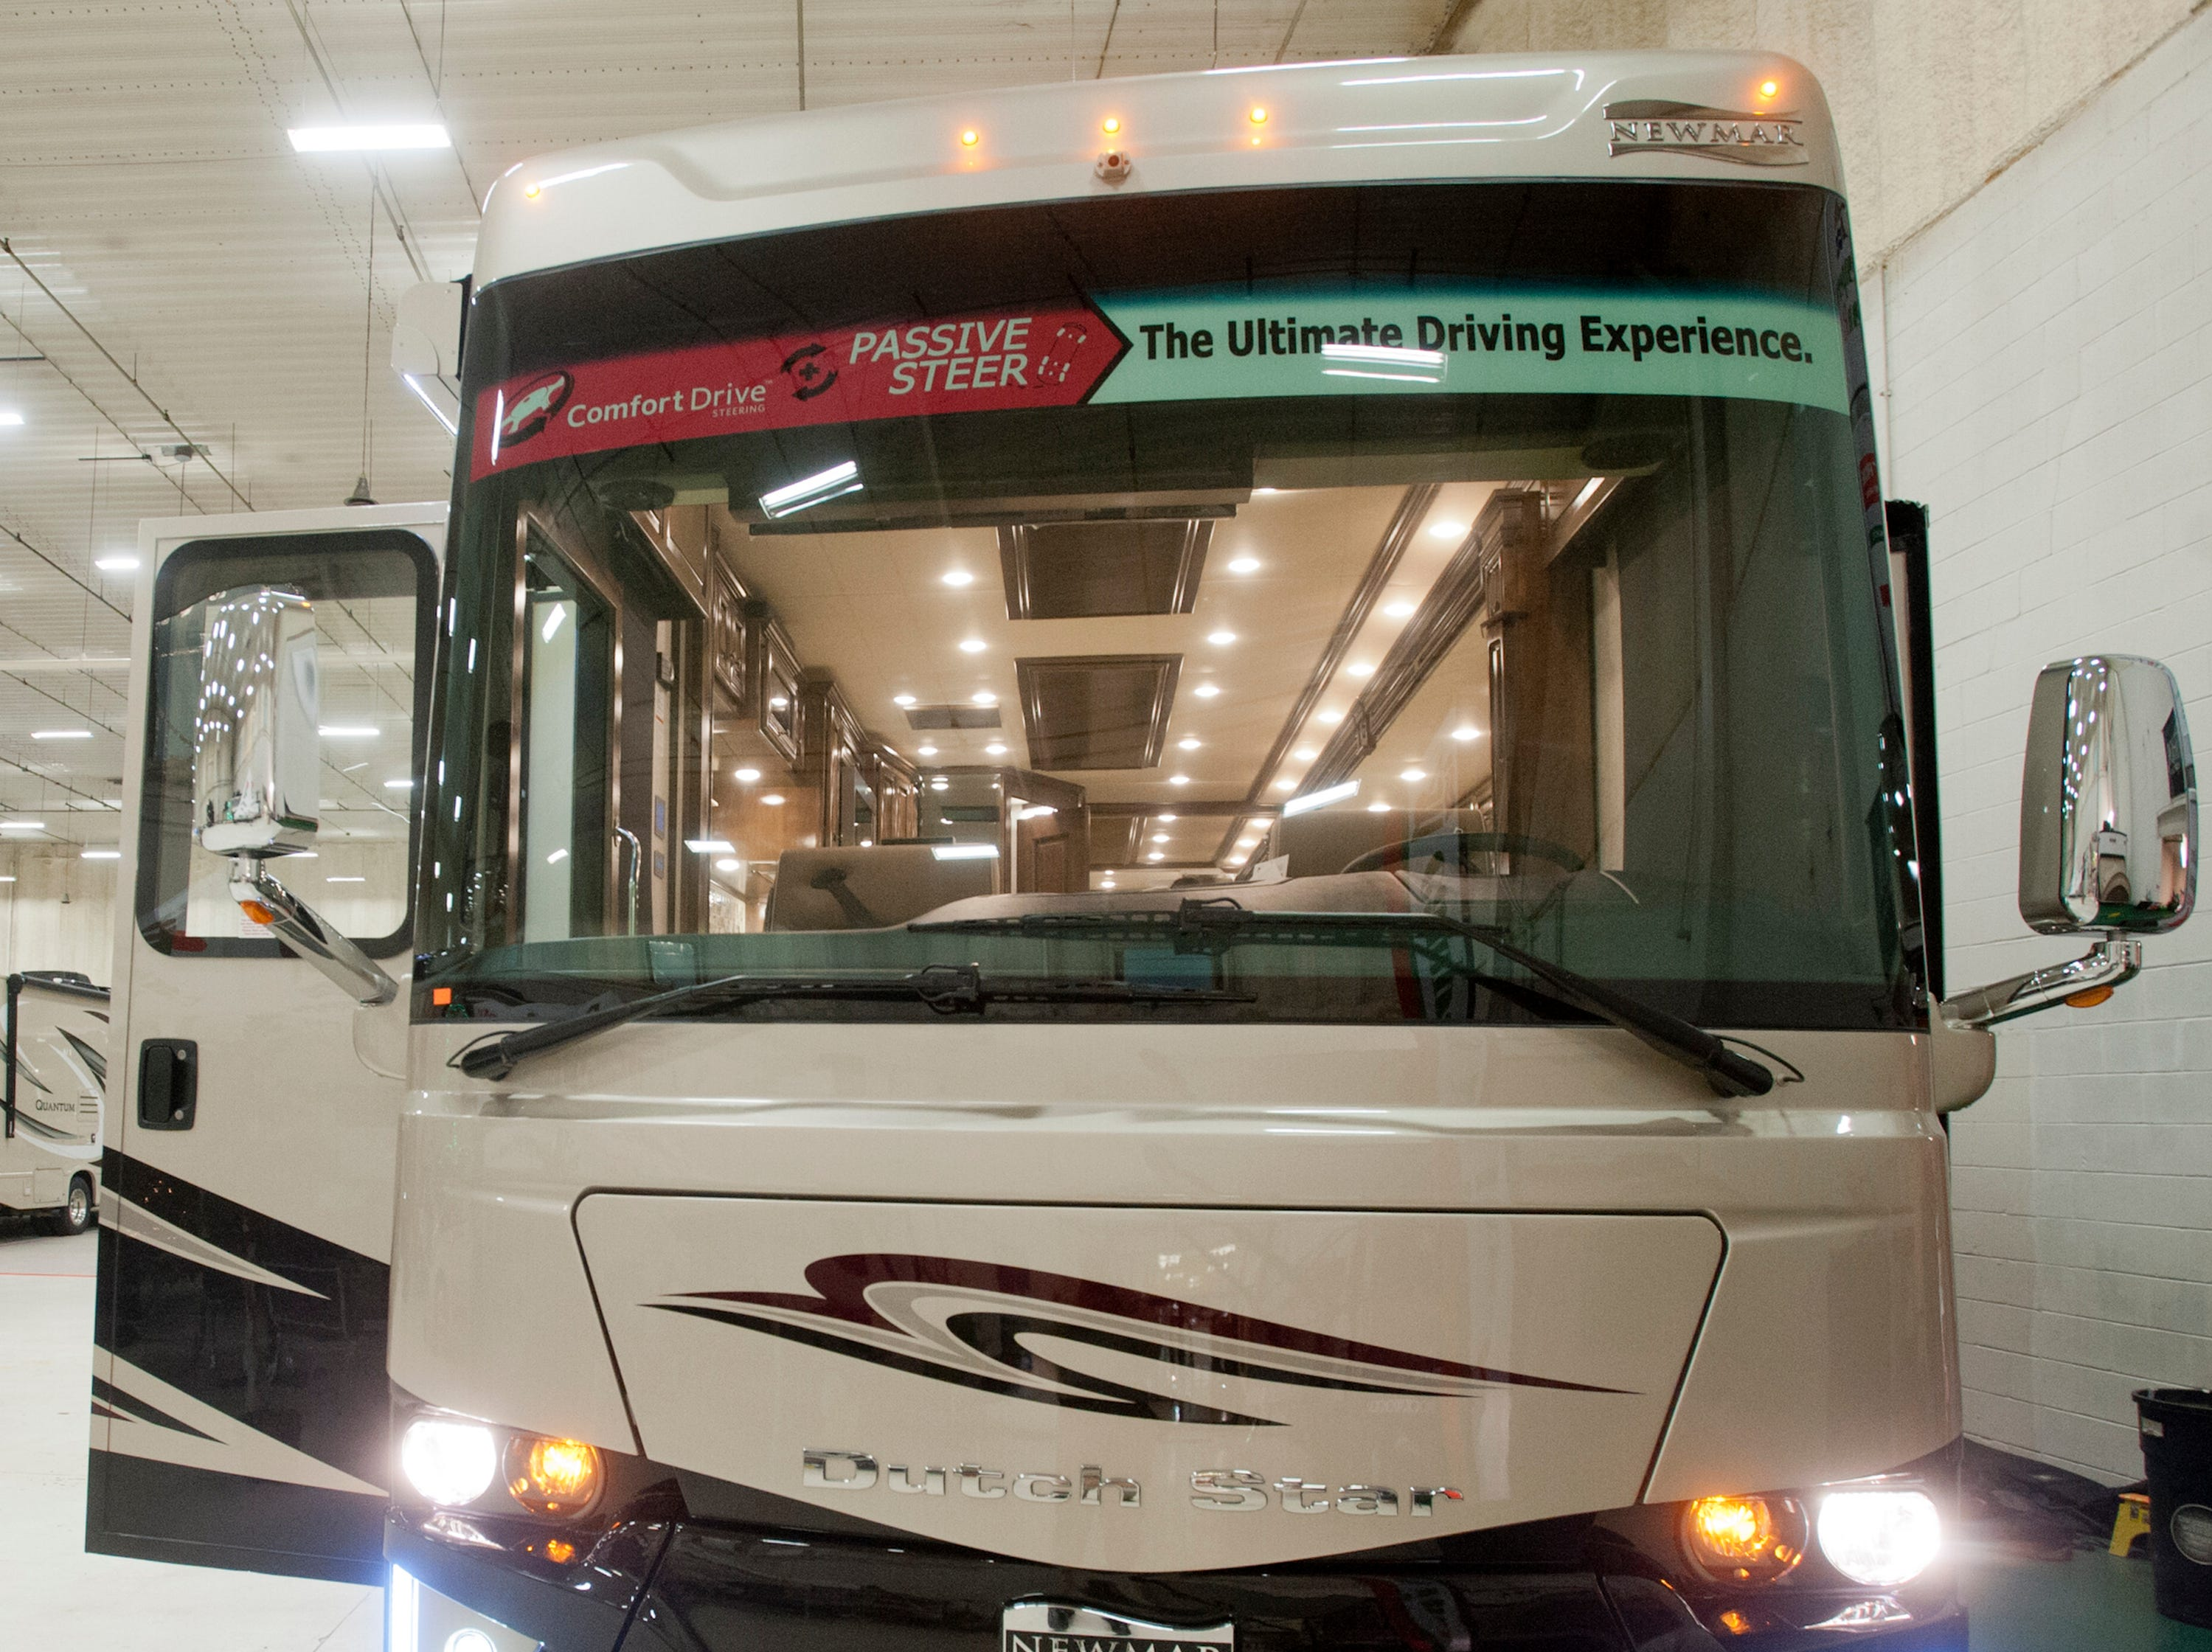 Campers Inn in Clarksville will be featuring this luxurious Newmar Dutch Star model 4362 at the Louisville Boat, RV and Sportshow in January.11 December 2018